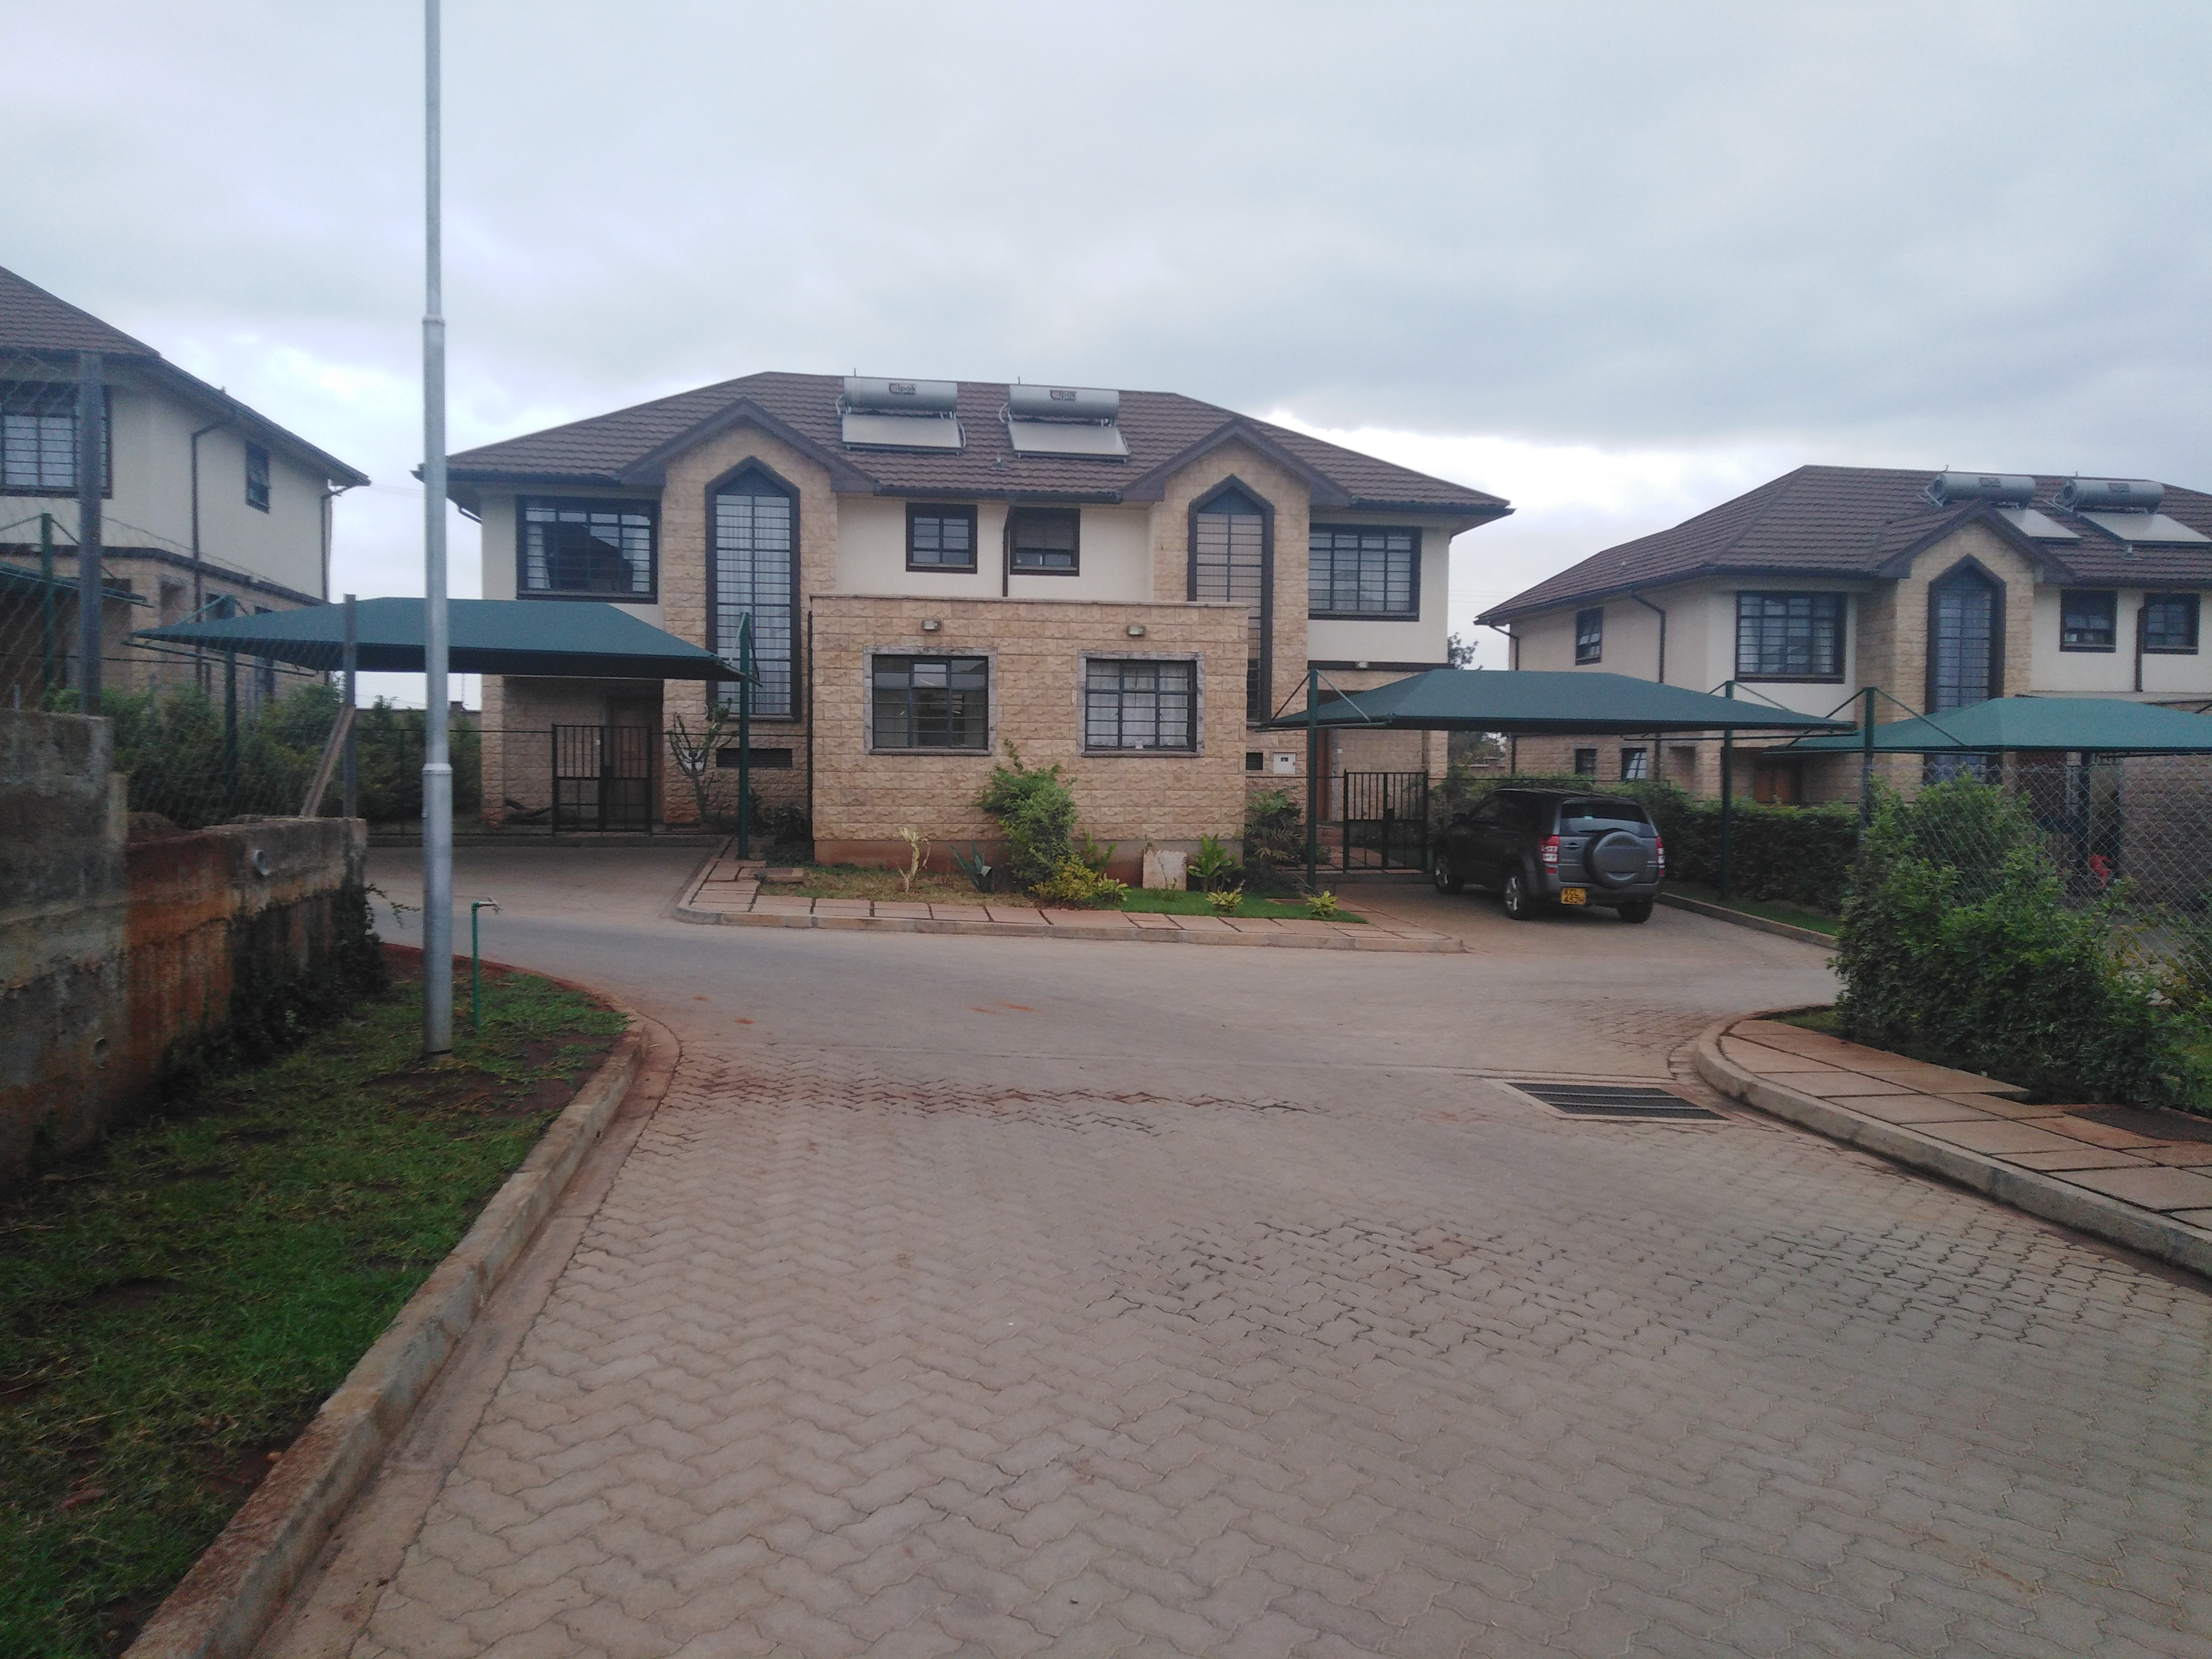 3 bedroom house to let in Edenville phase 2